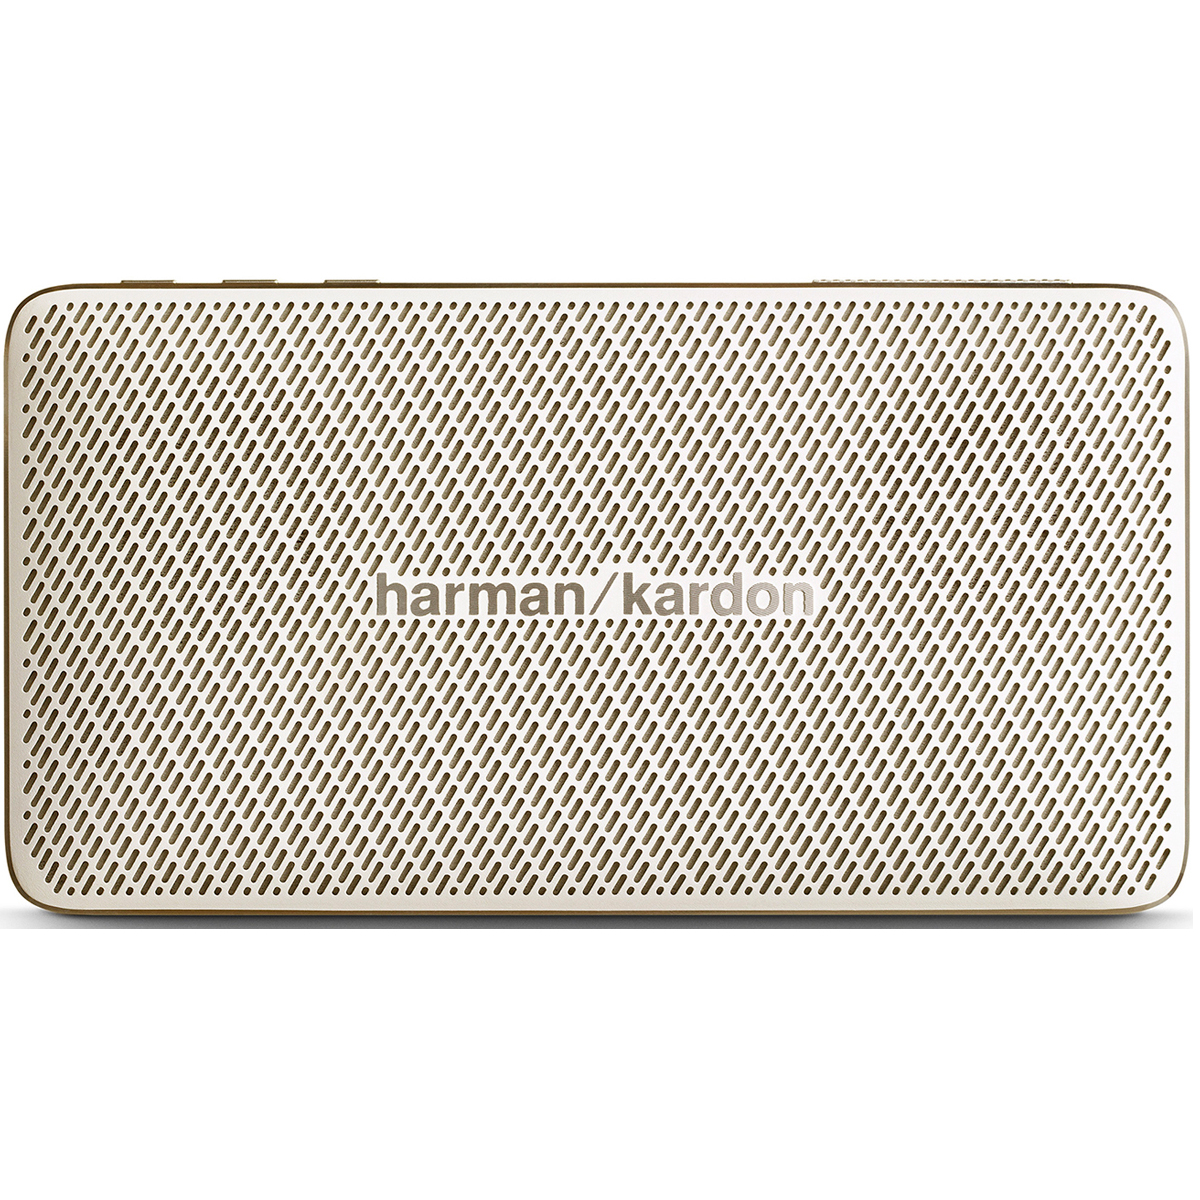 Harman Kardon HKESQUIREMINIGLDAS Esquire Mini Portable Speaker